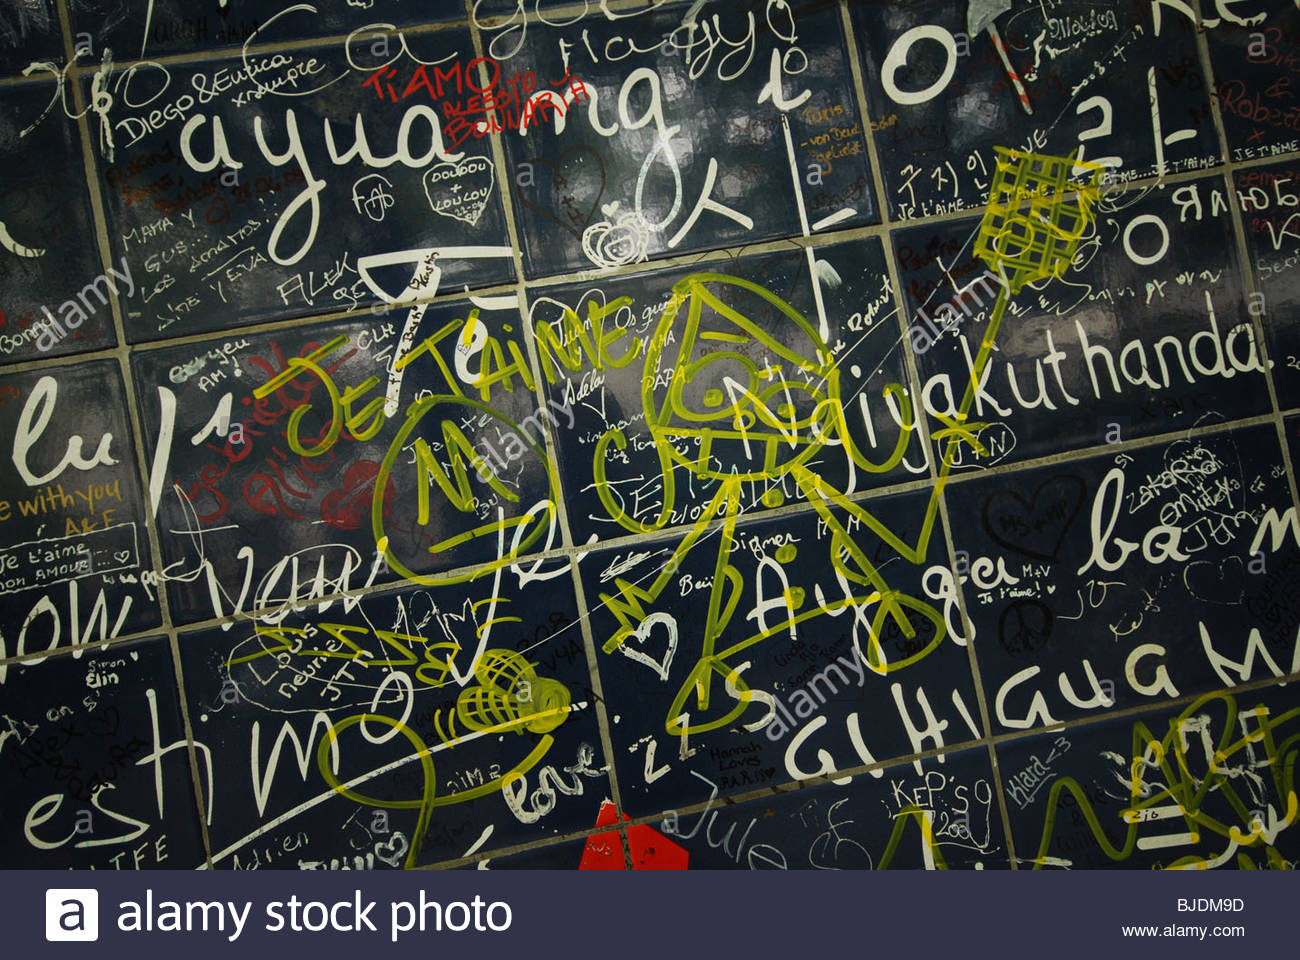 vandalised detail of Love Wall near Place des Abbesses Montmartre Paris France - Stock Image